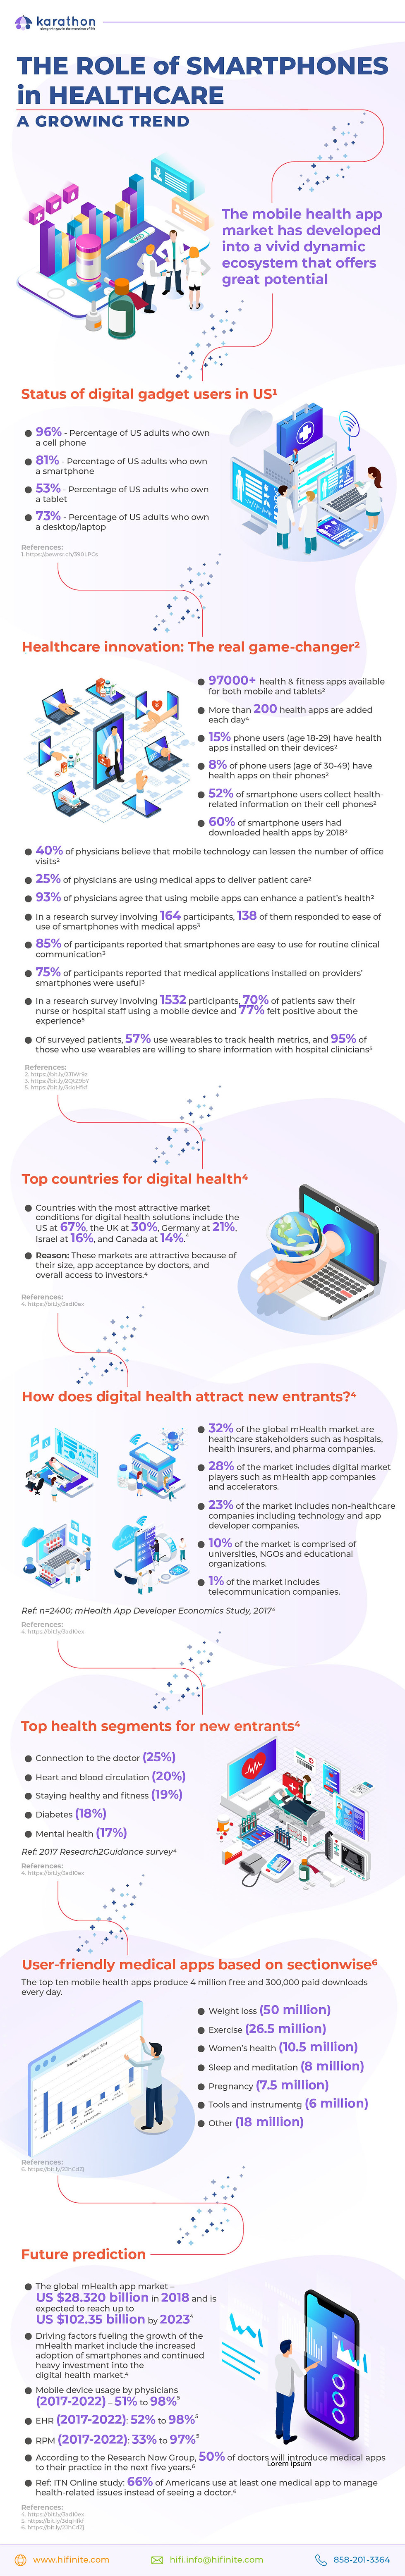 10. Role of smartphone in healthcare - a